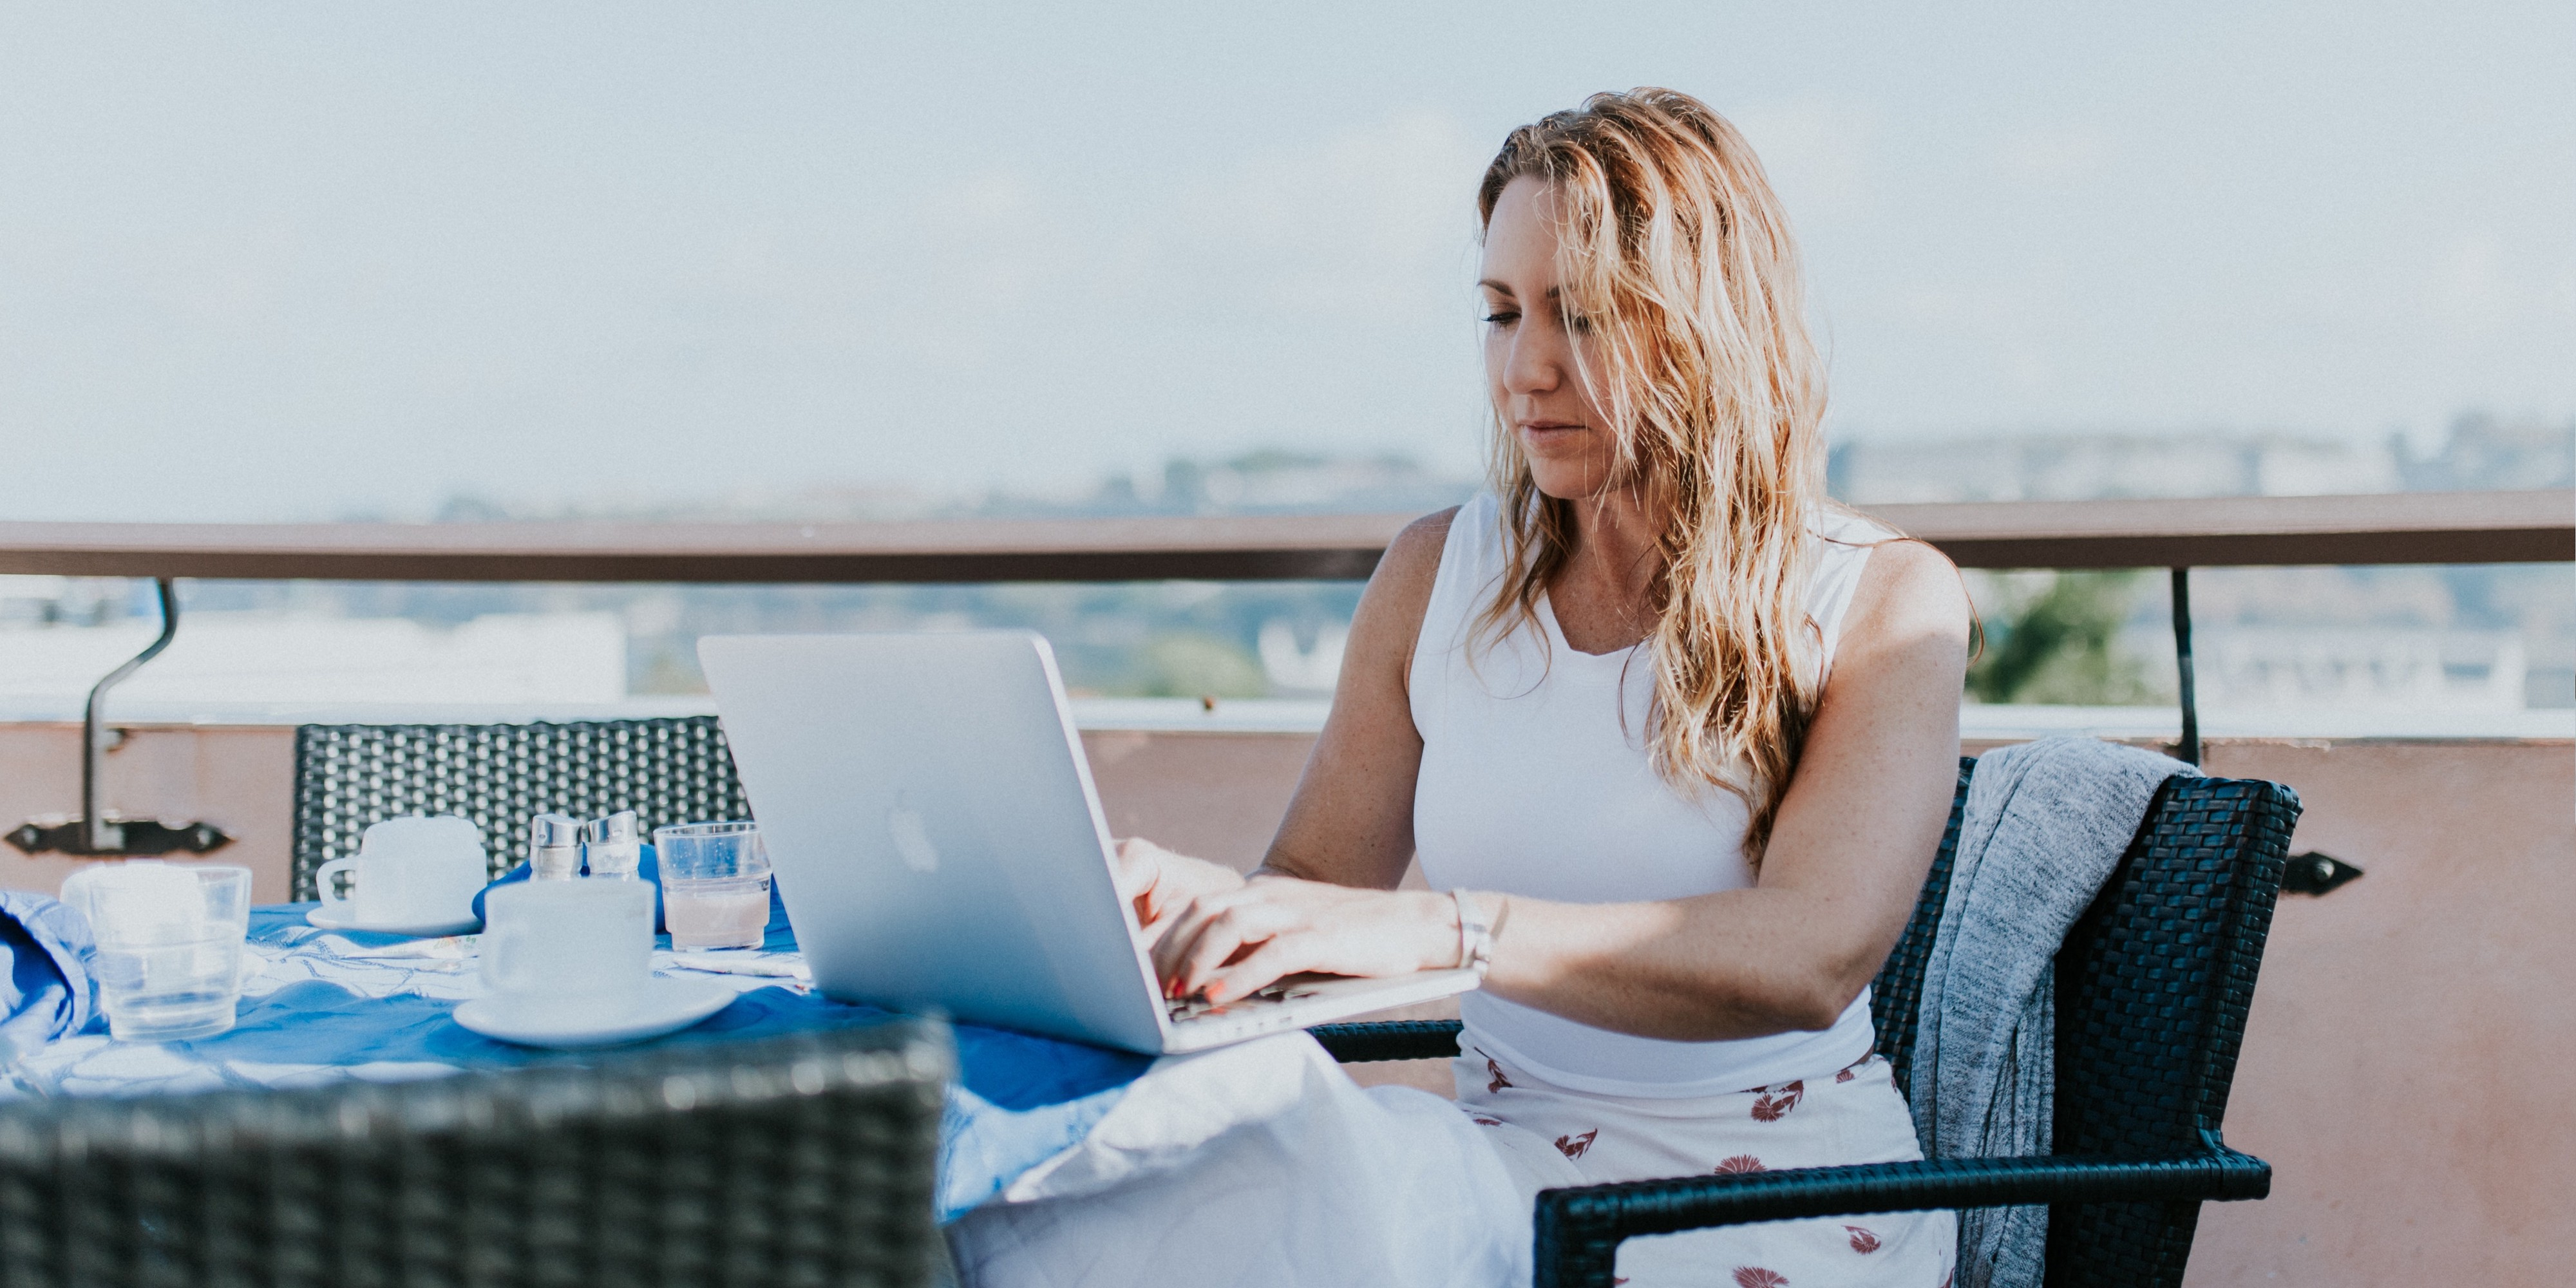 Image of a woman working on her laptop at a table on a balcony overlooking a cityscape